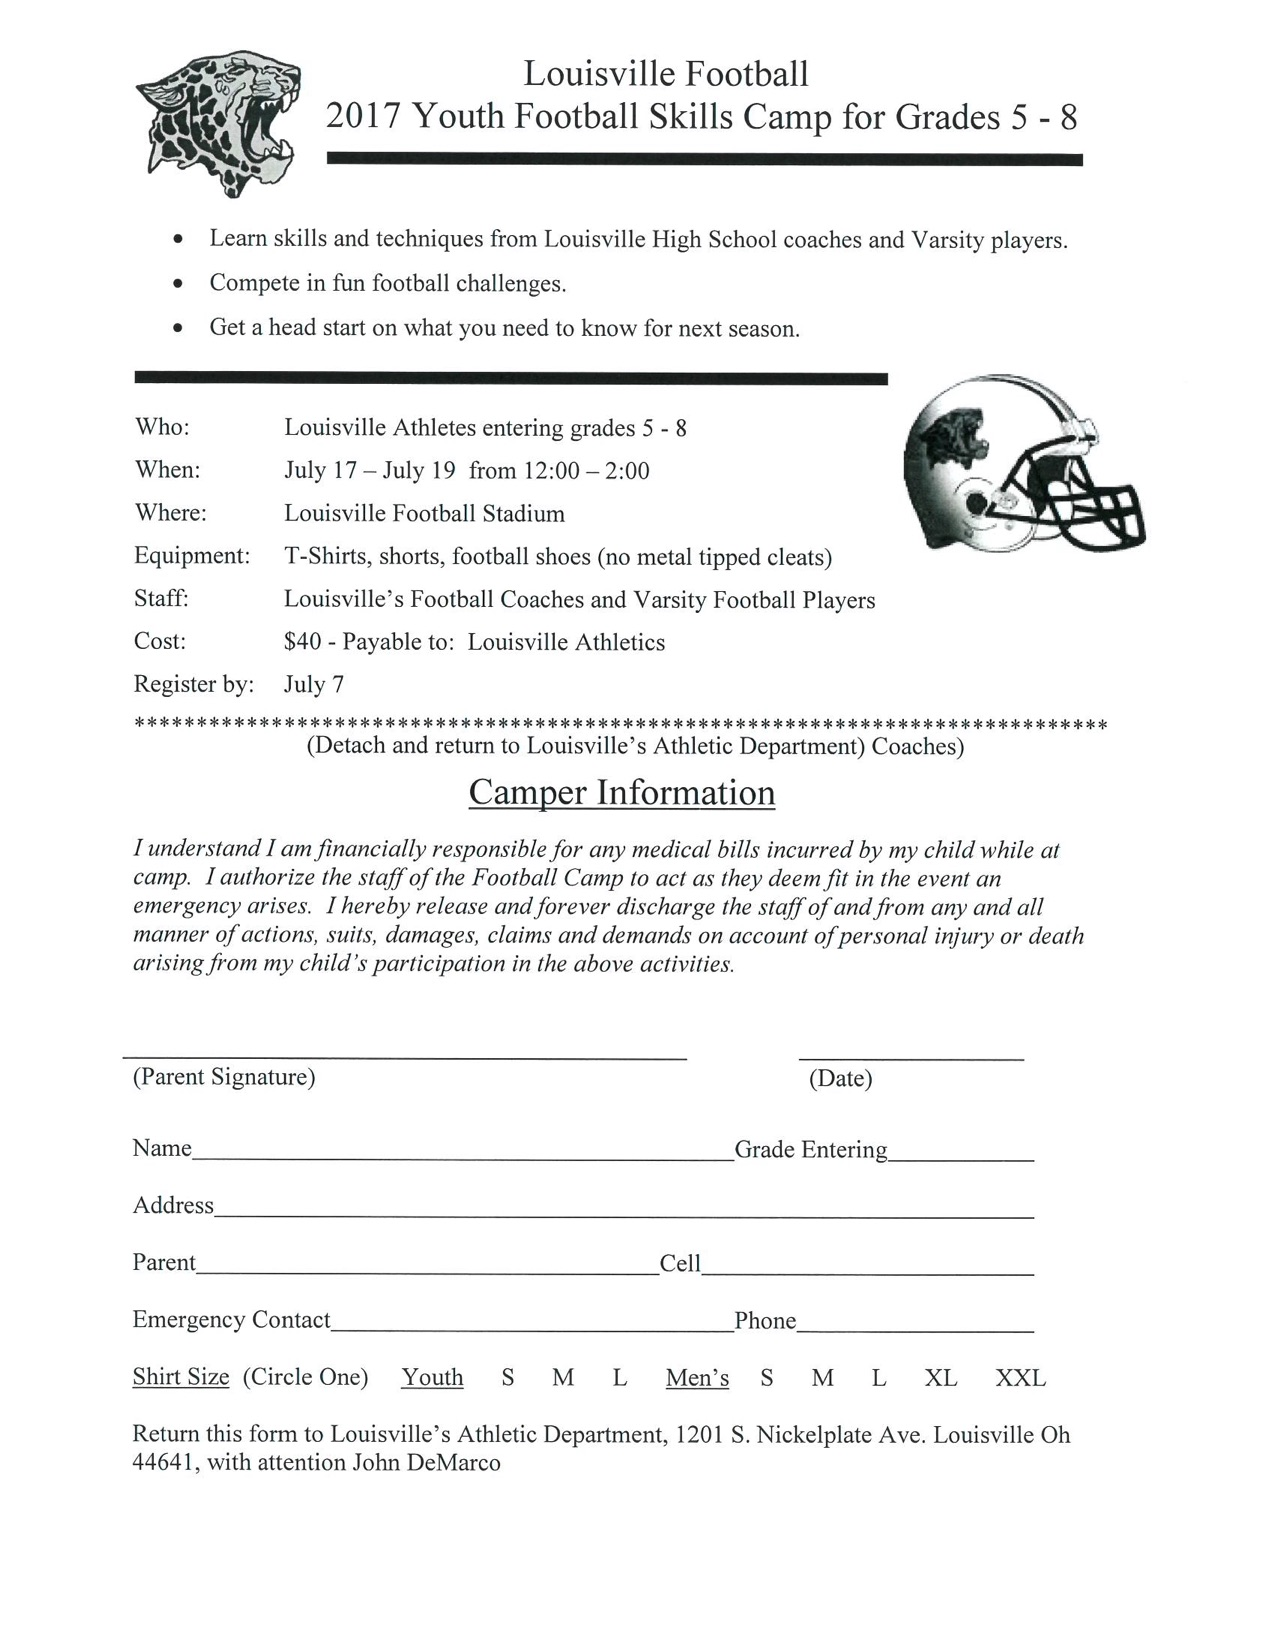 Louisville Football 2017 Youth Football Skills Camp Form